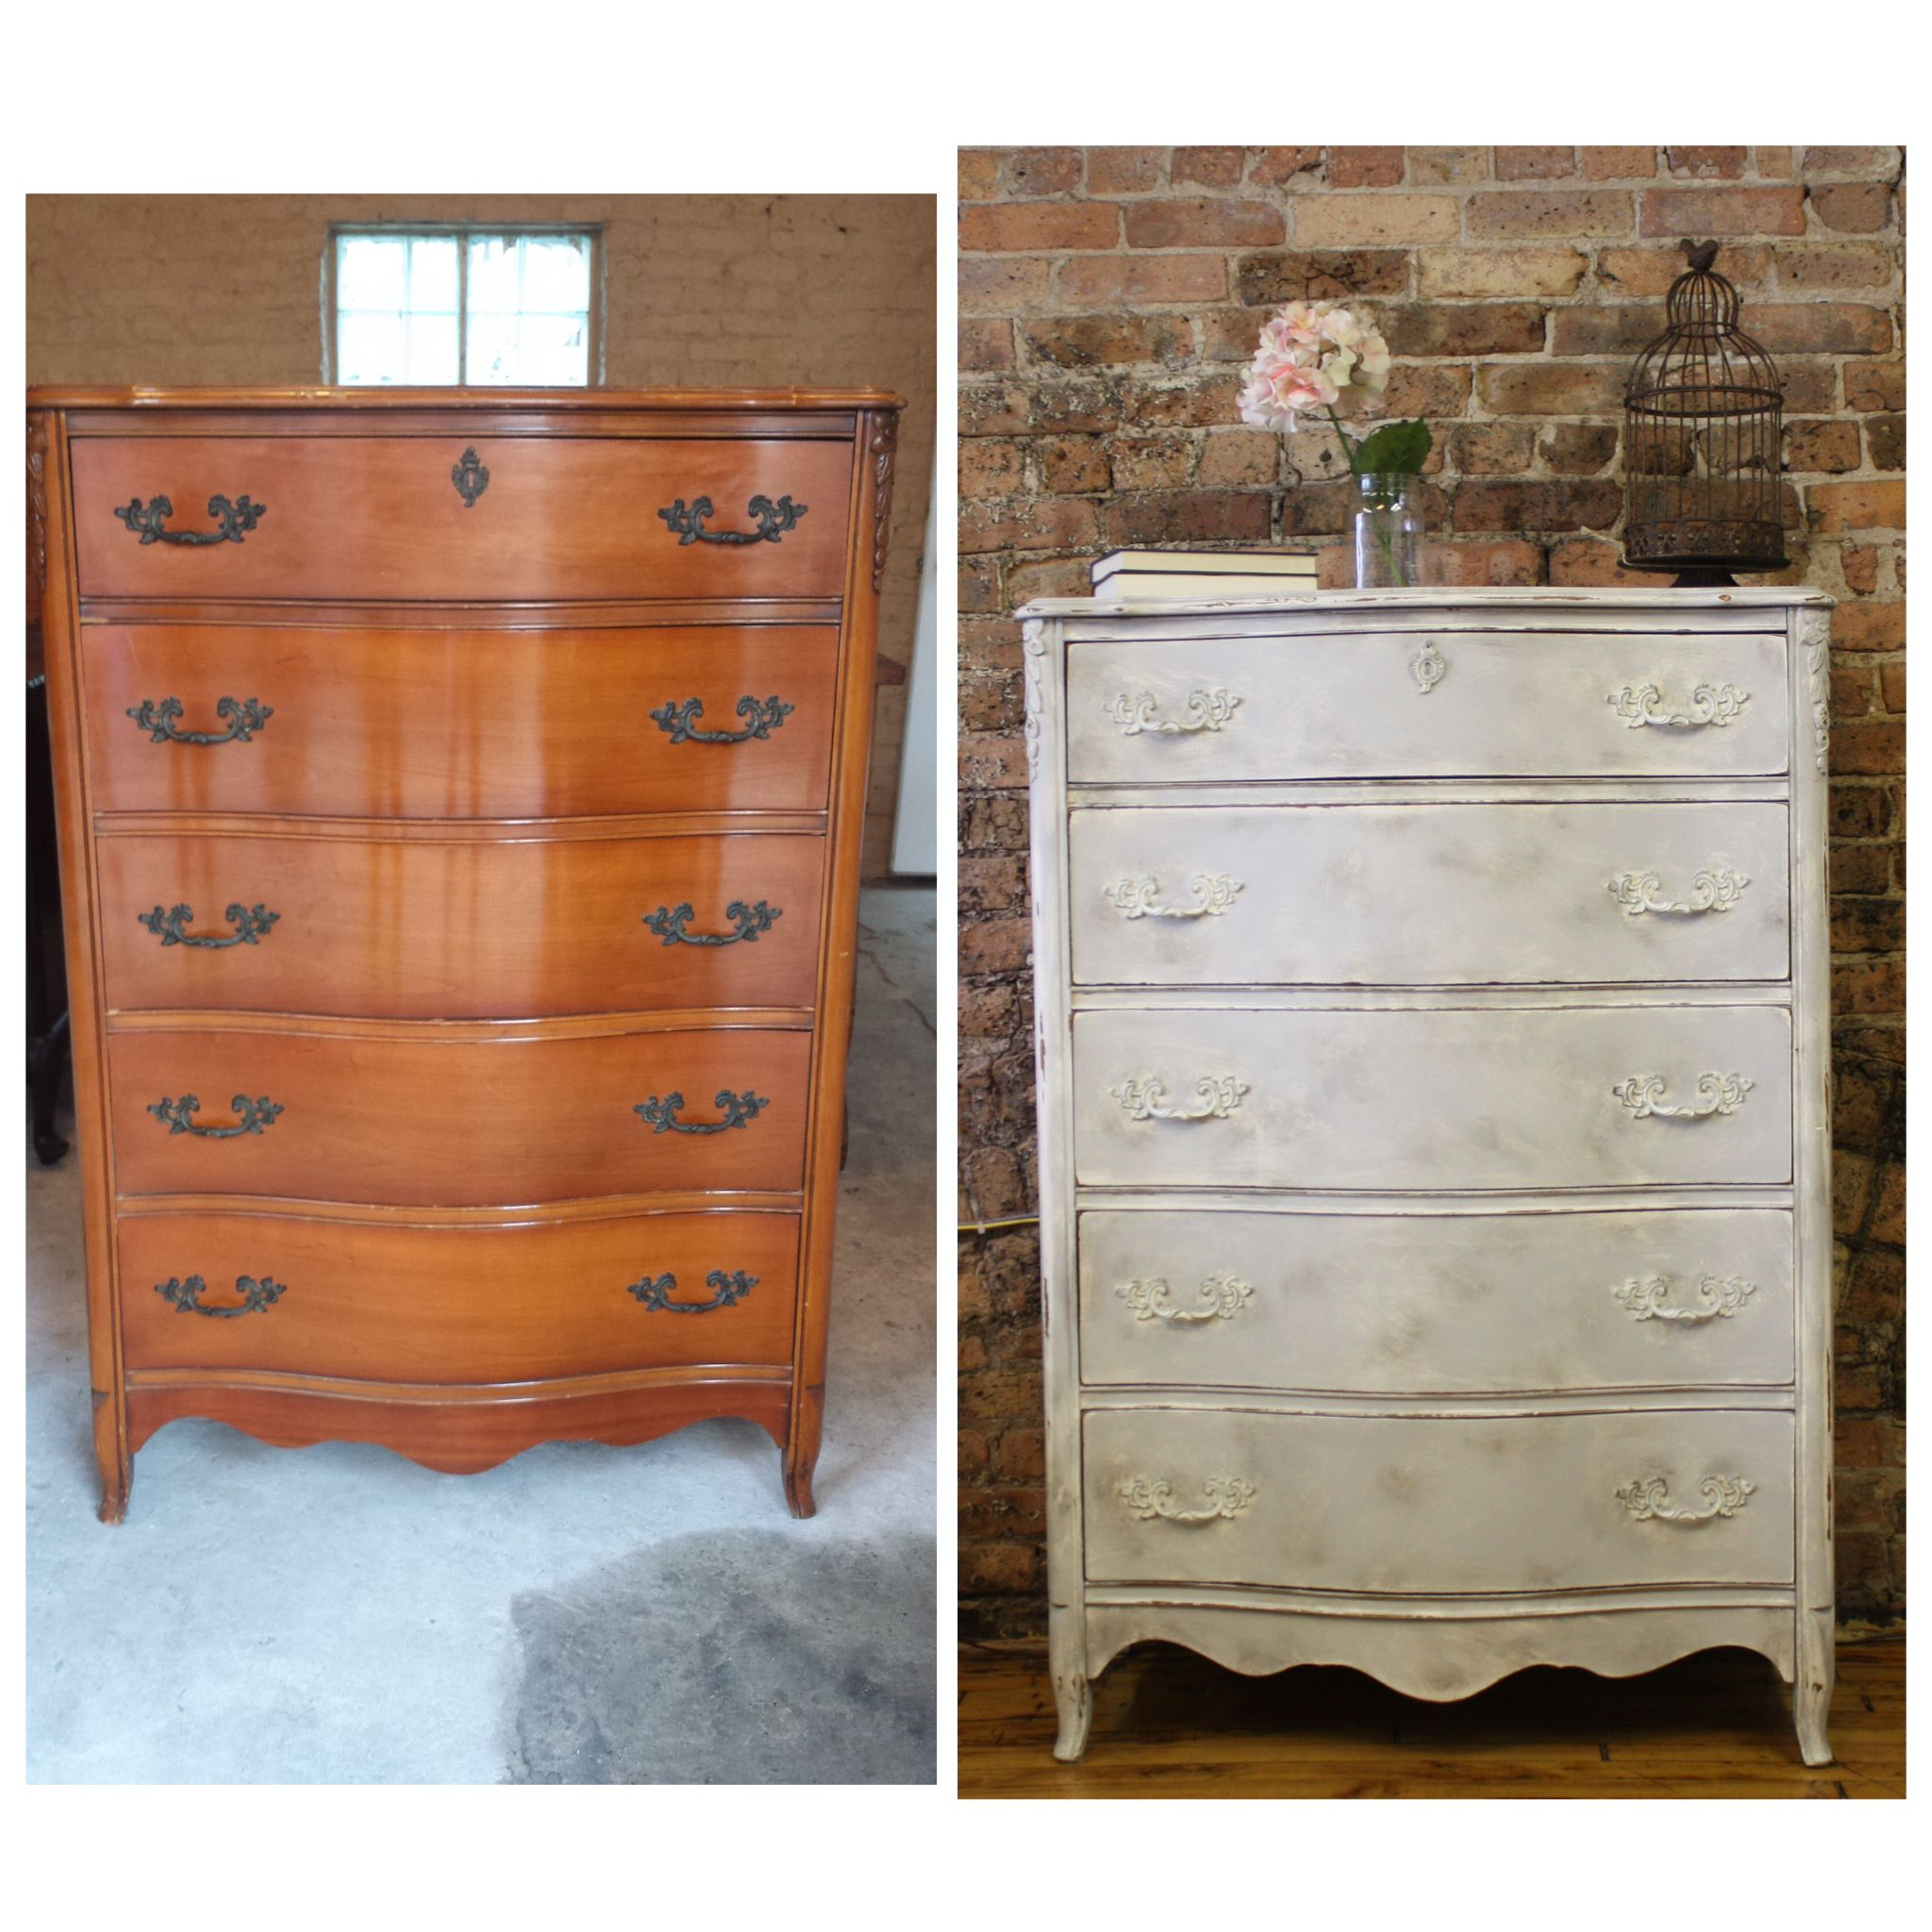 antique distressed furniture. Antique, Distressed, Rustic, Vintage, Curvy, Country, Farmhouse, Light Gray Antique Distressed Furniture I